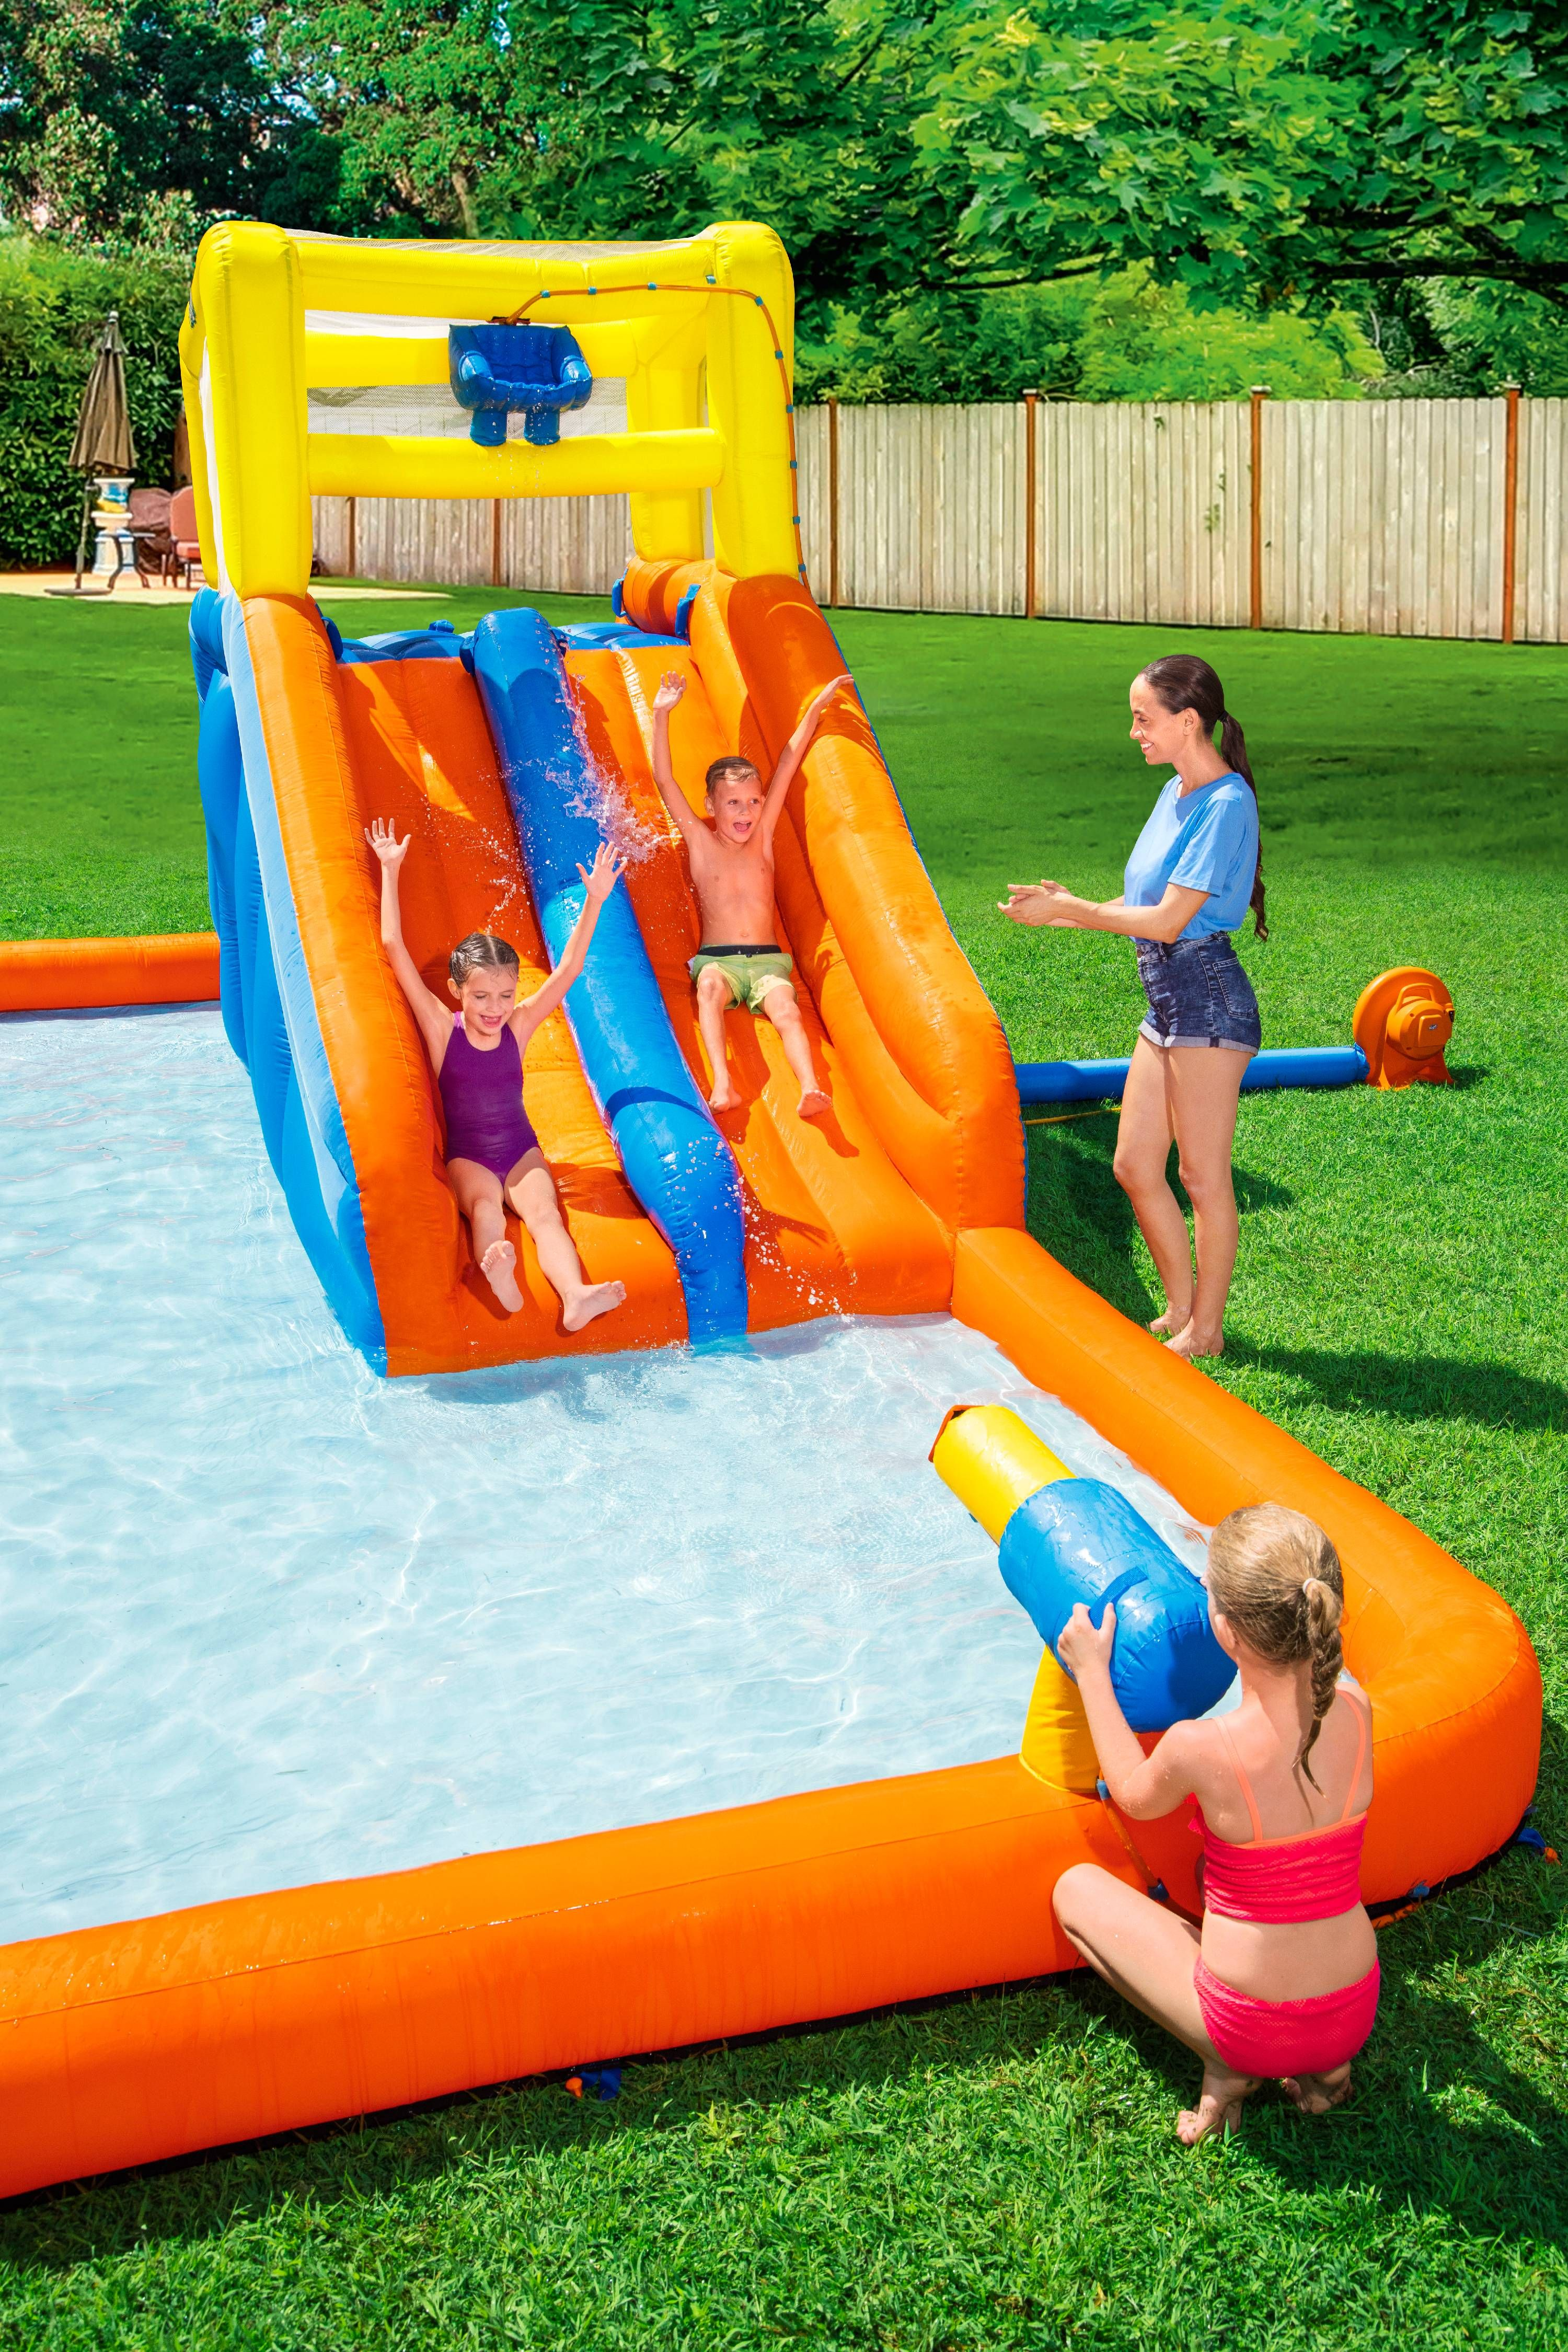 H2ogo Maui Mountain Kids Inflatable Water Park 8 8 Walmart Com Inflatable Water Park Water Park Outdoor Games For Toddlers